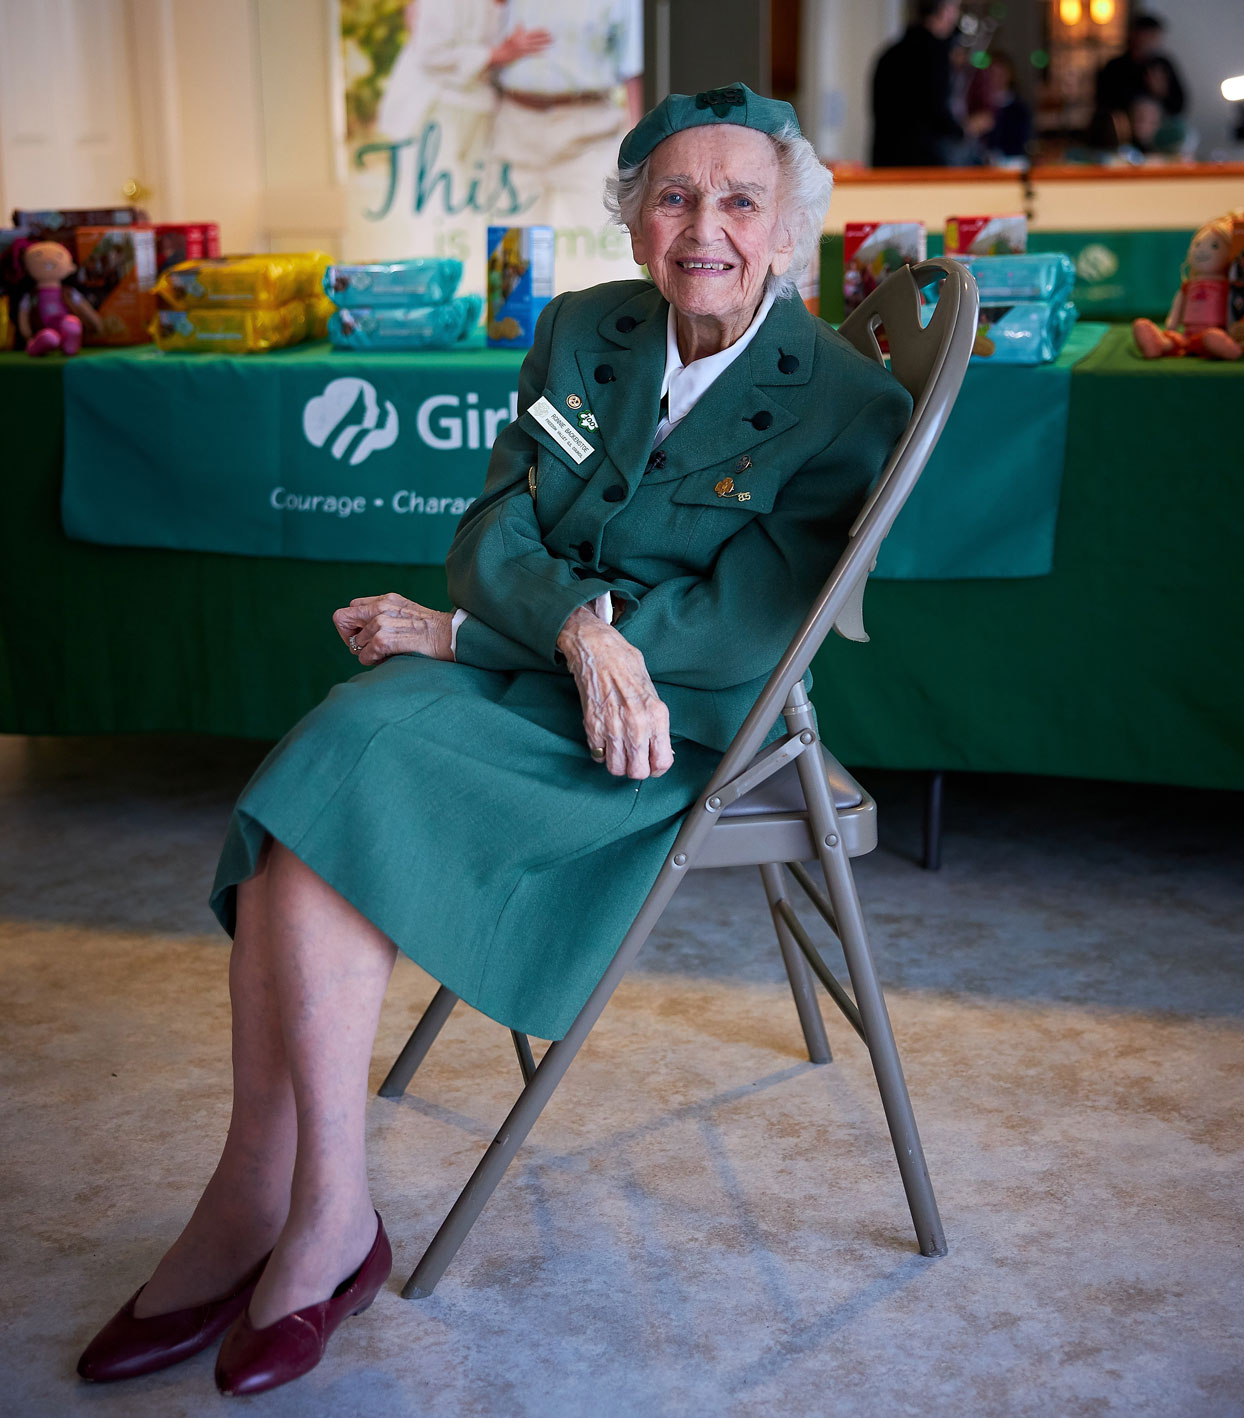 Meet the 98-Year-Old Girl Scout Trying Her Best to Sell as Many Cookies as She Can